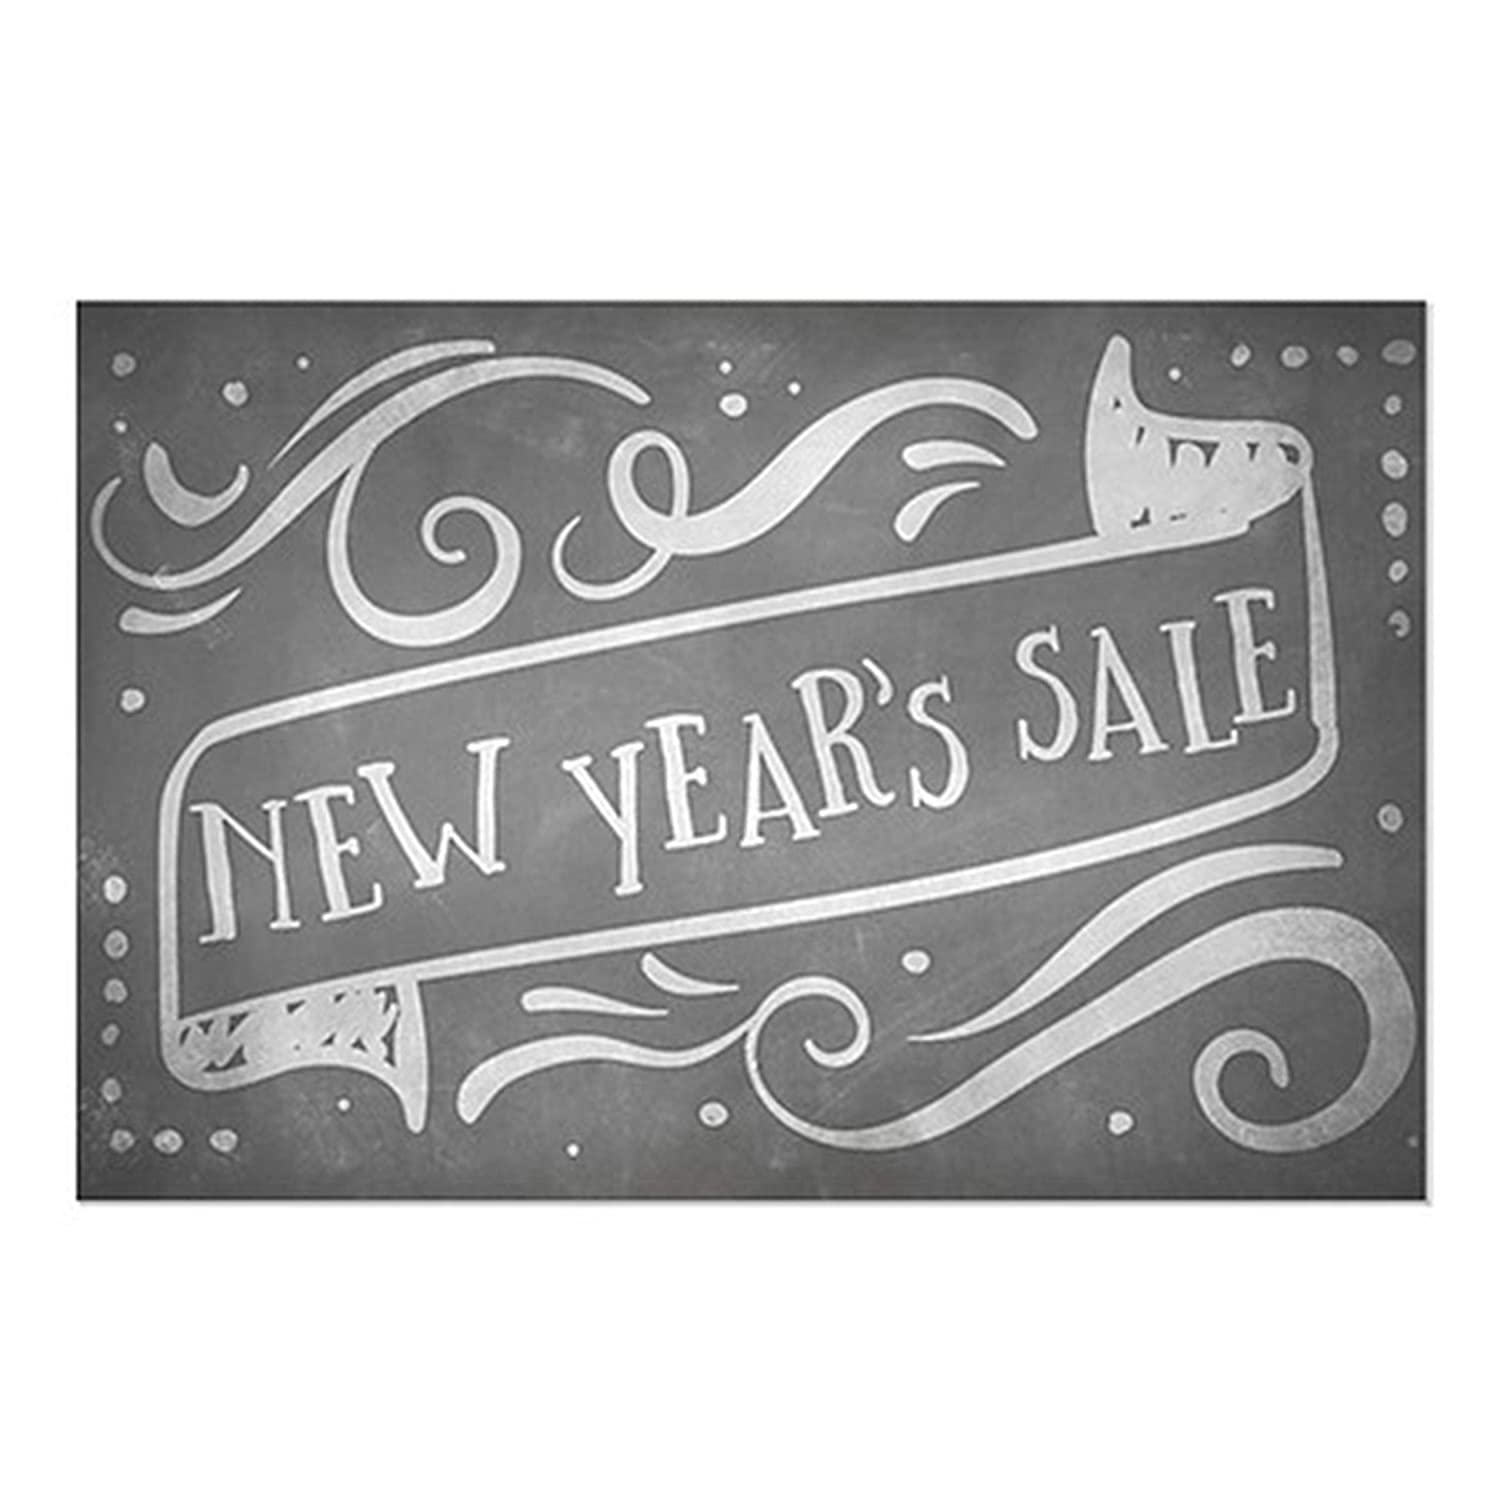 CGSignLab 24x24 5-Pack Basic Gray Clear Window Cling for Lease